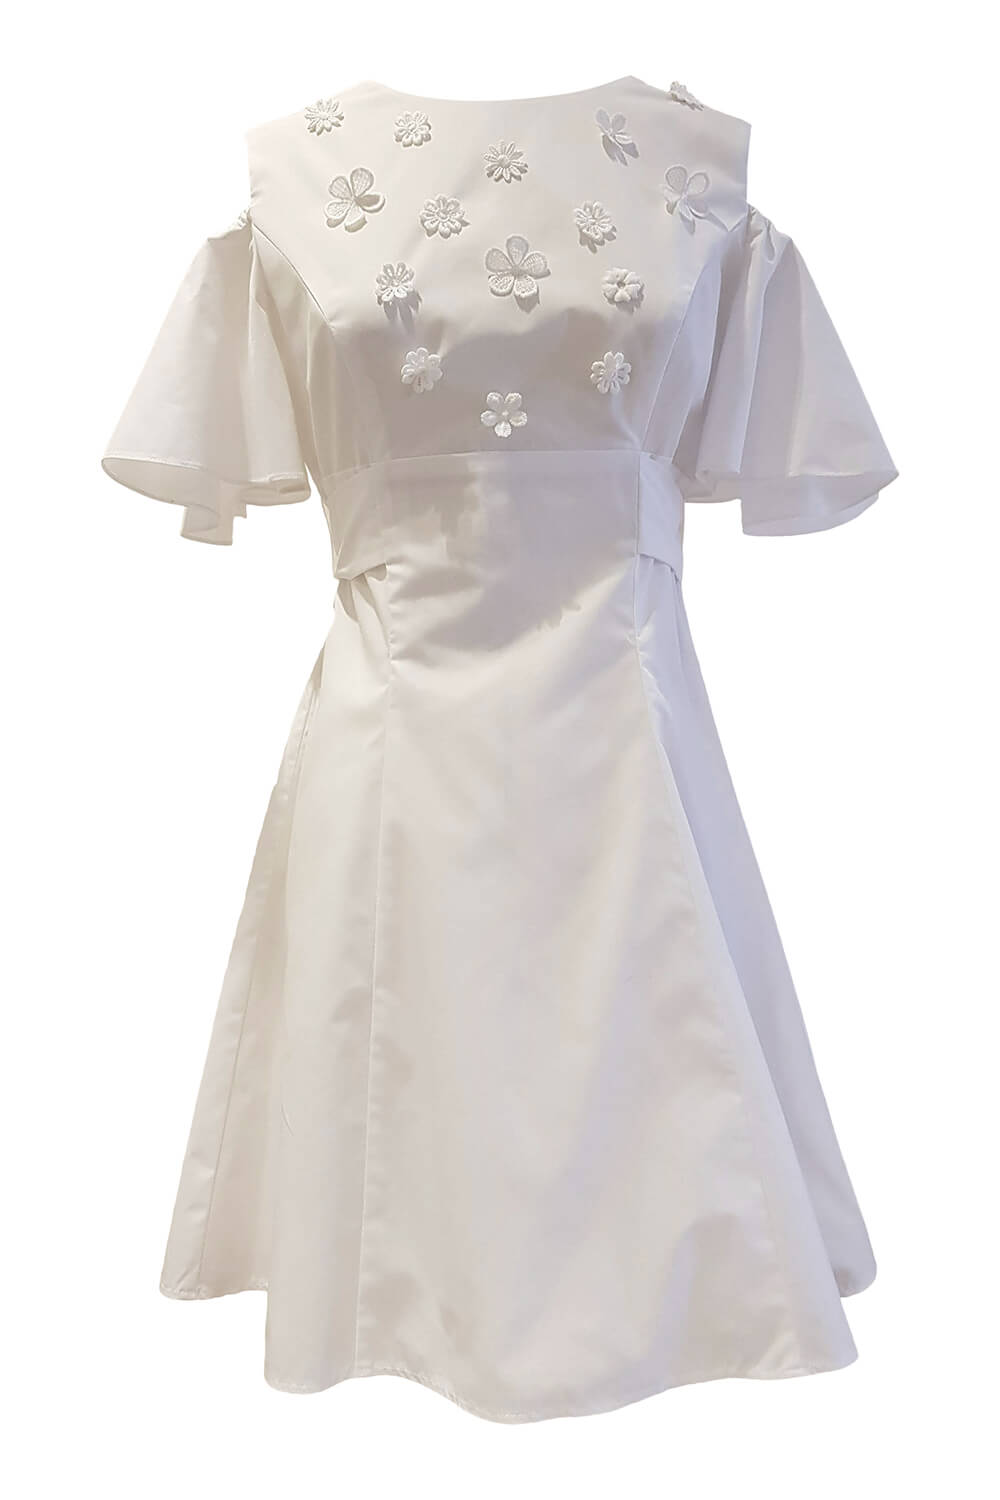 white cotton dress SARA with embroideries and angel sleeves in A-line